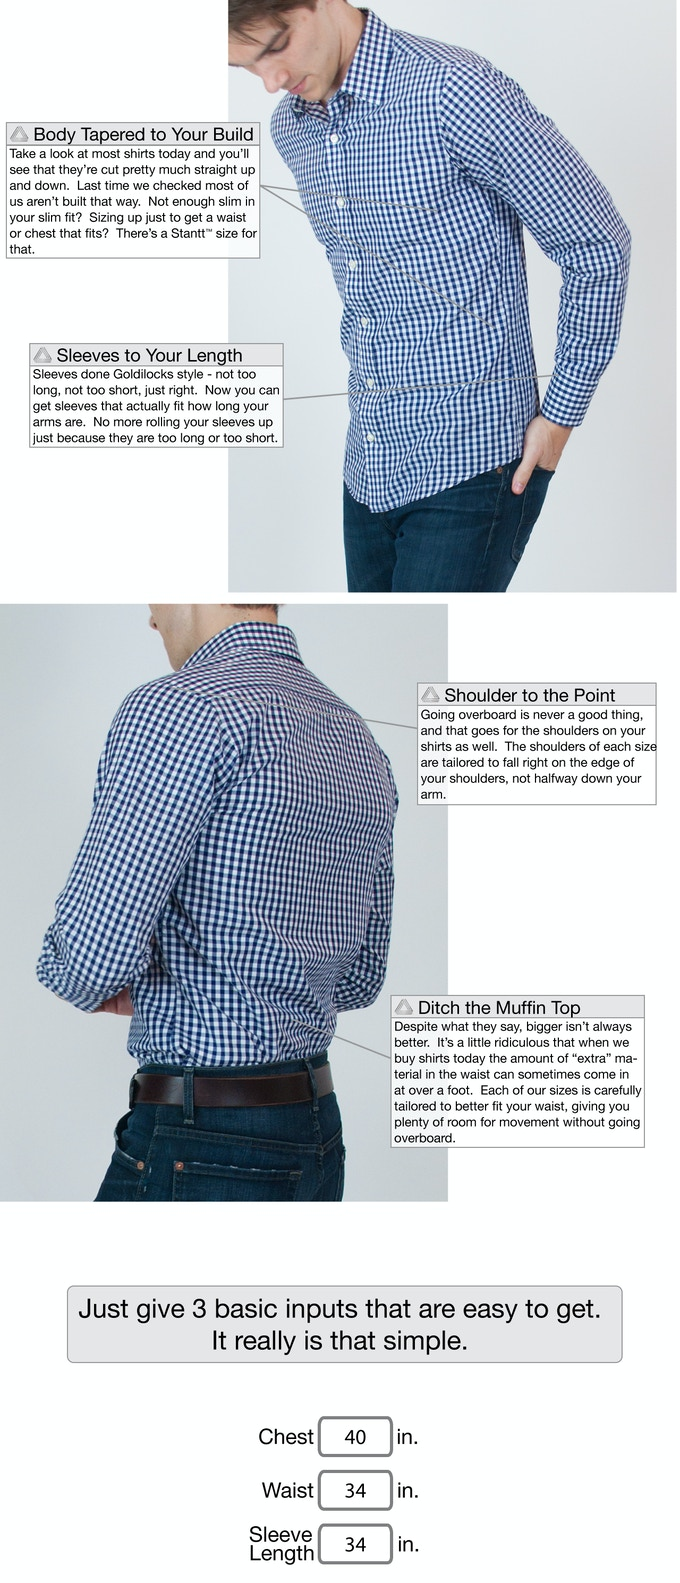 Stantt Casual Shirts That Fit Like Theyre Tailored For You By